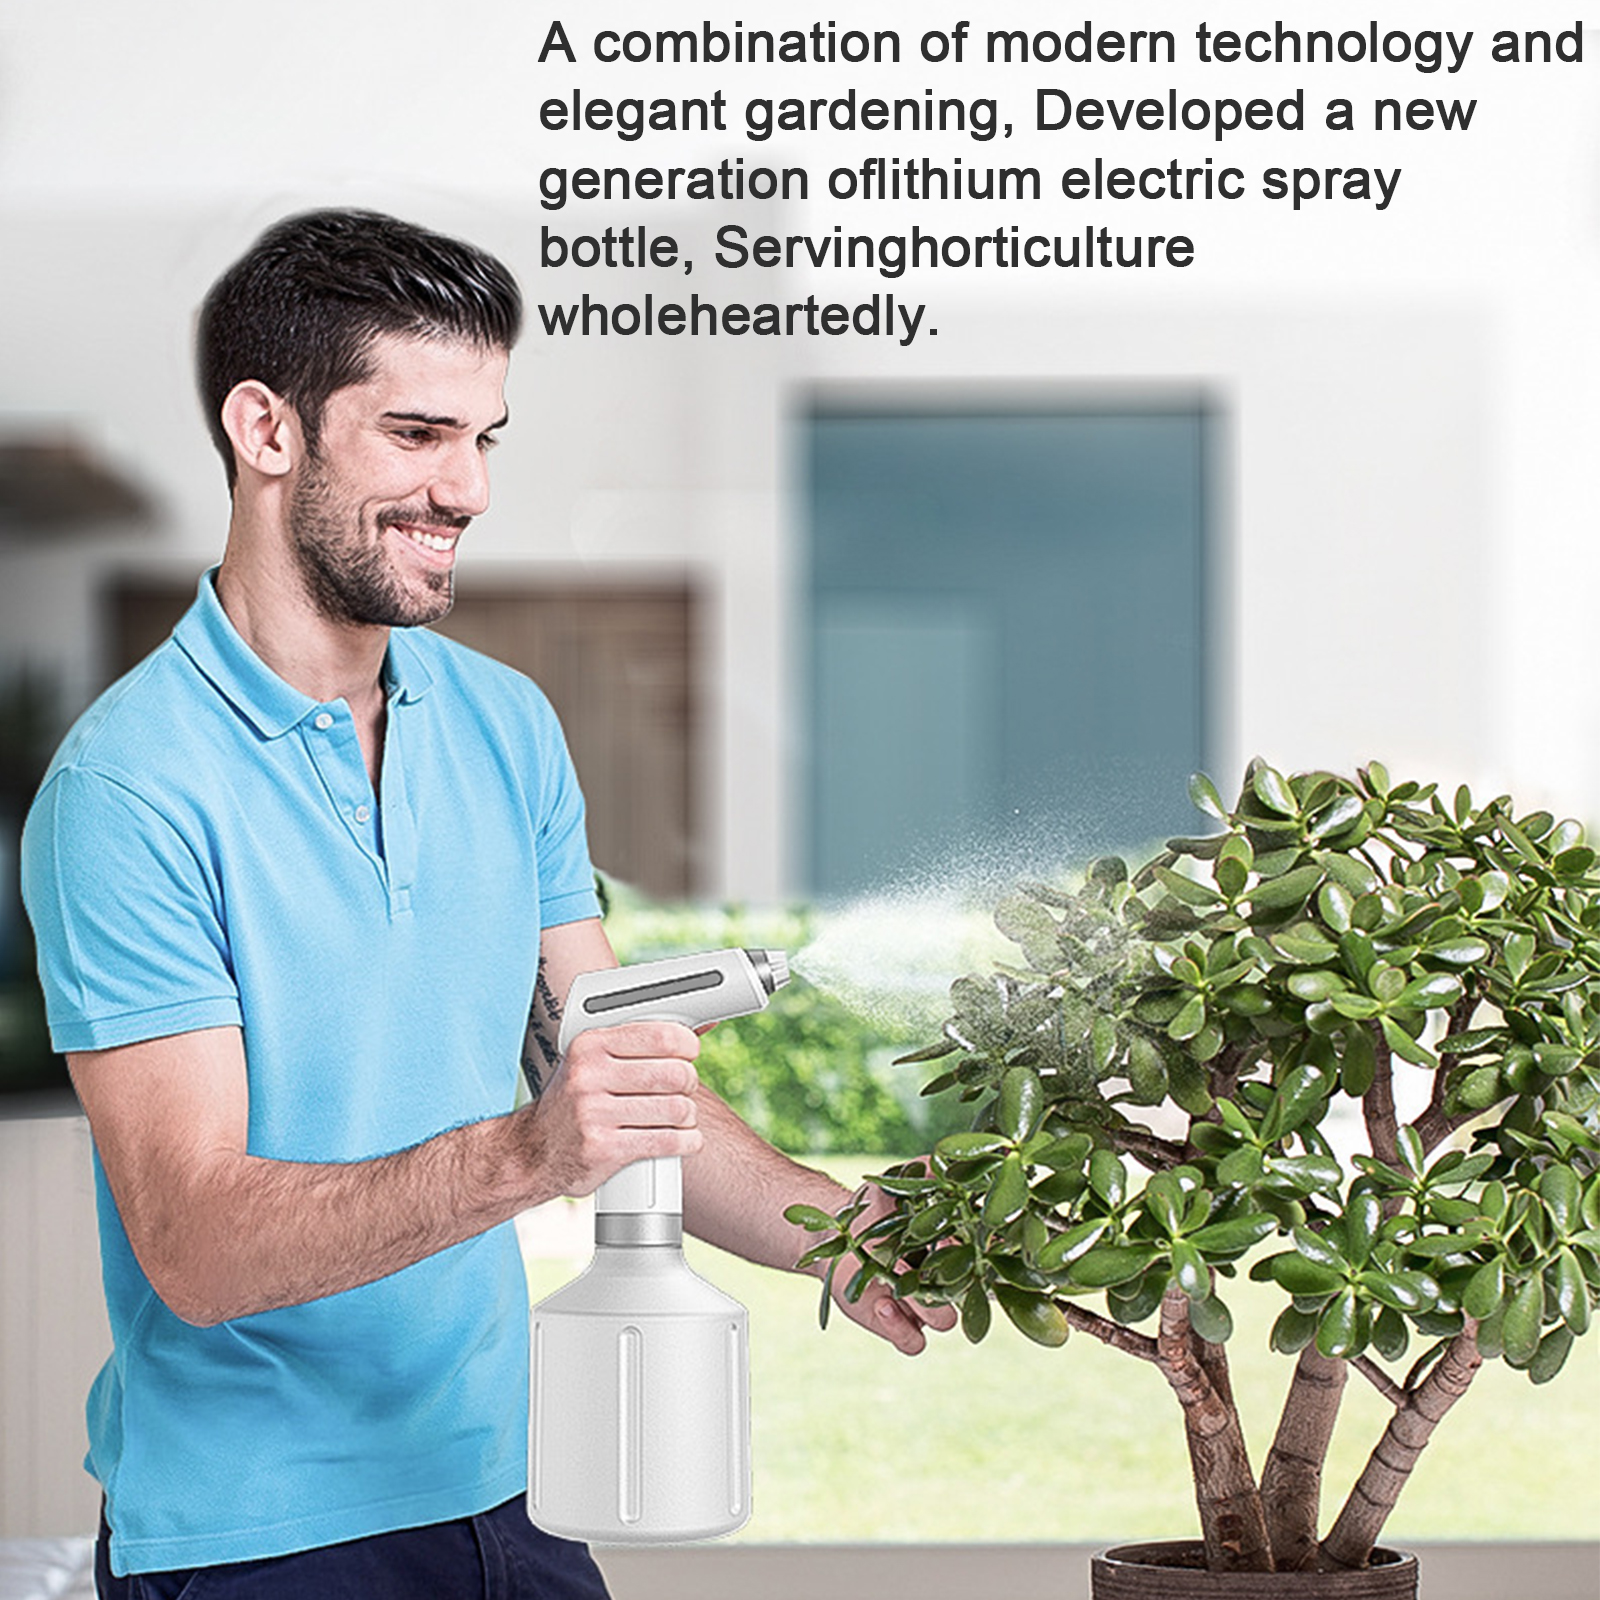 Electric Garden Sprayer Sprinklers and Accessories Spray Bottle Cleaning Stream and Fine Mist 900ML Battery Powered-2